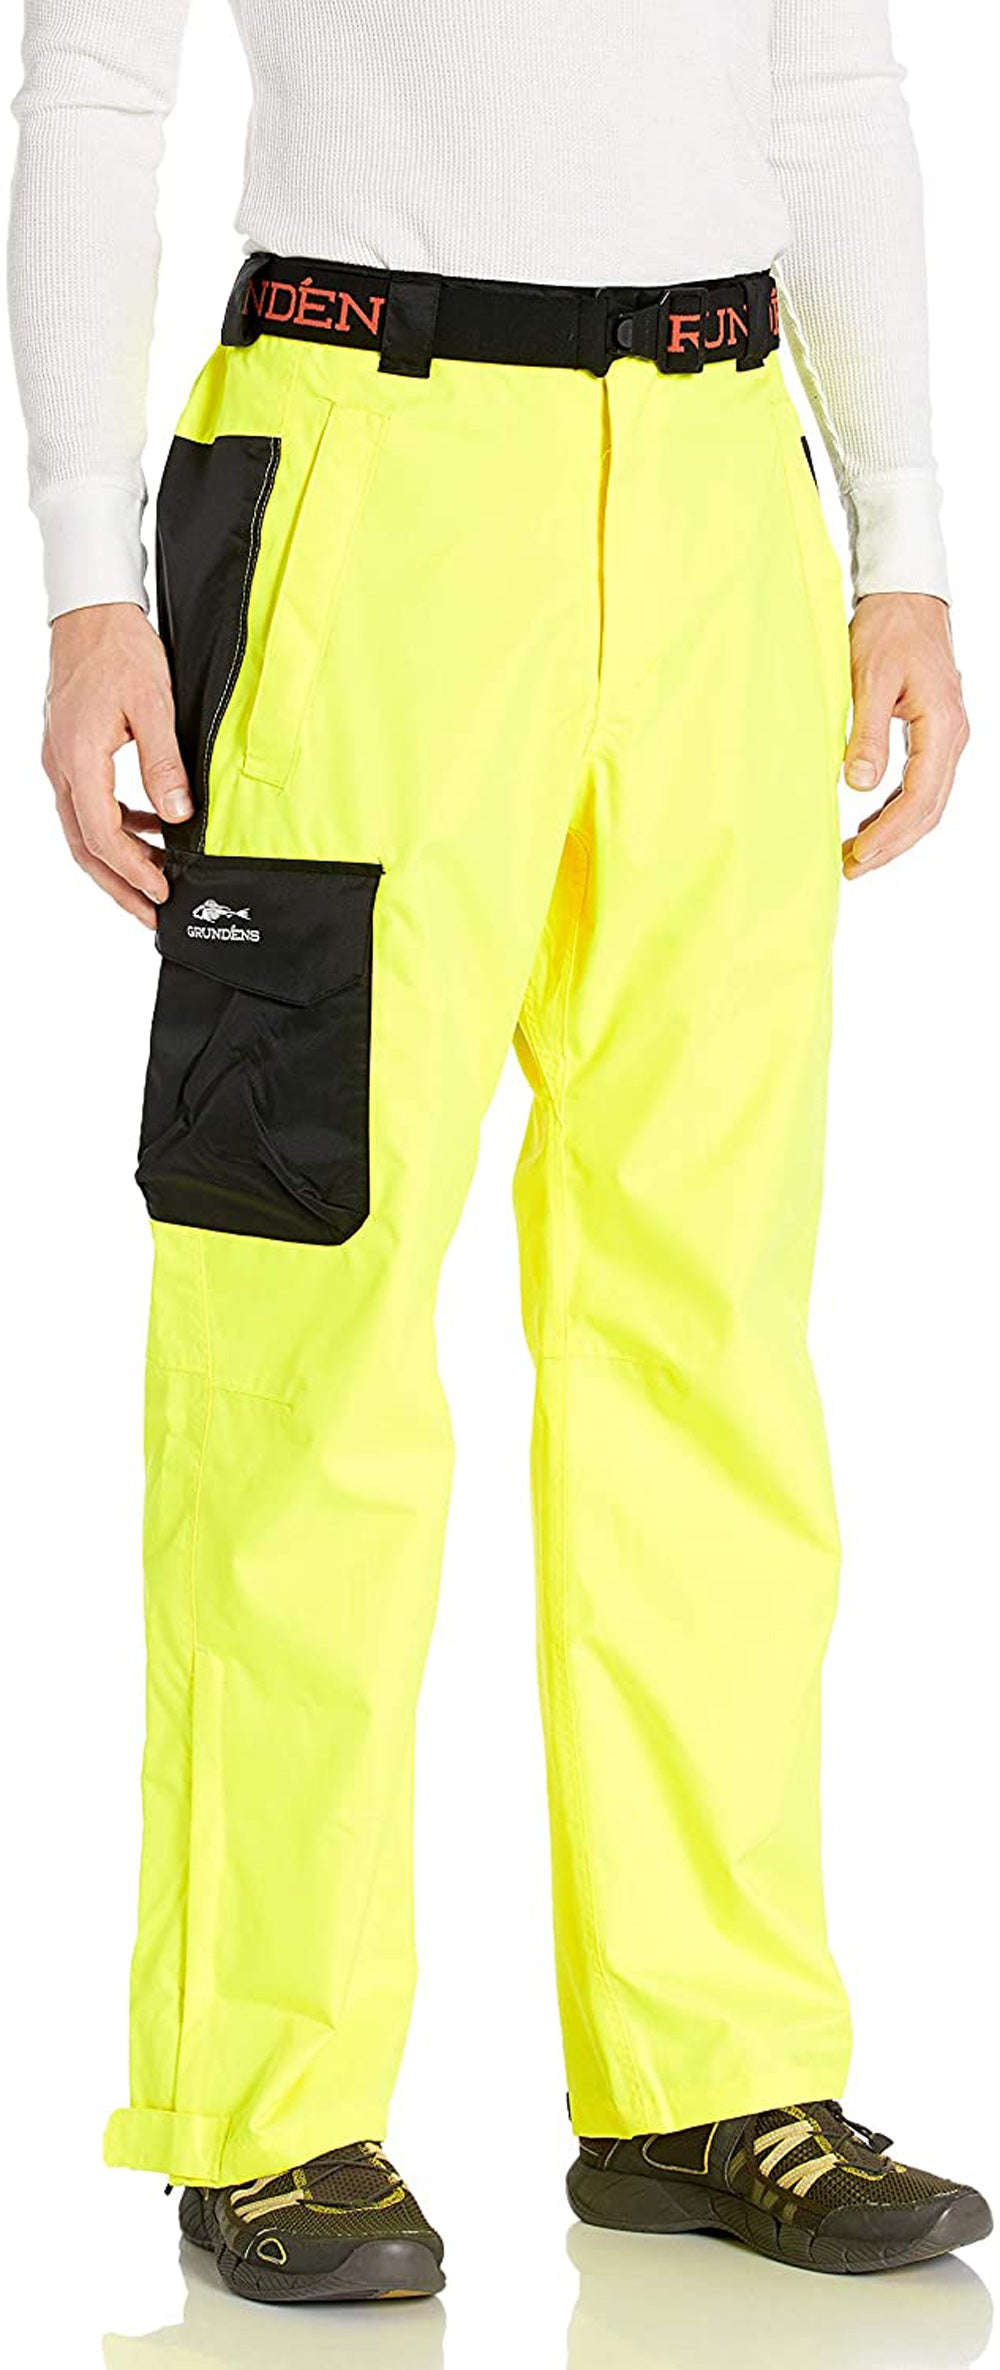 Weather Watch Pant in Hi Vis Yellow color from the front view